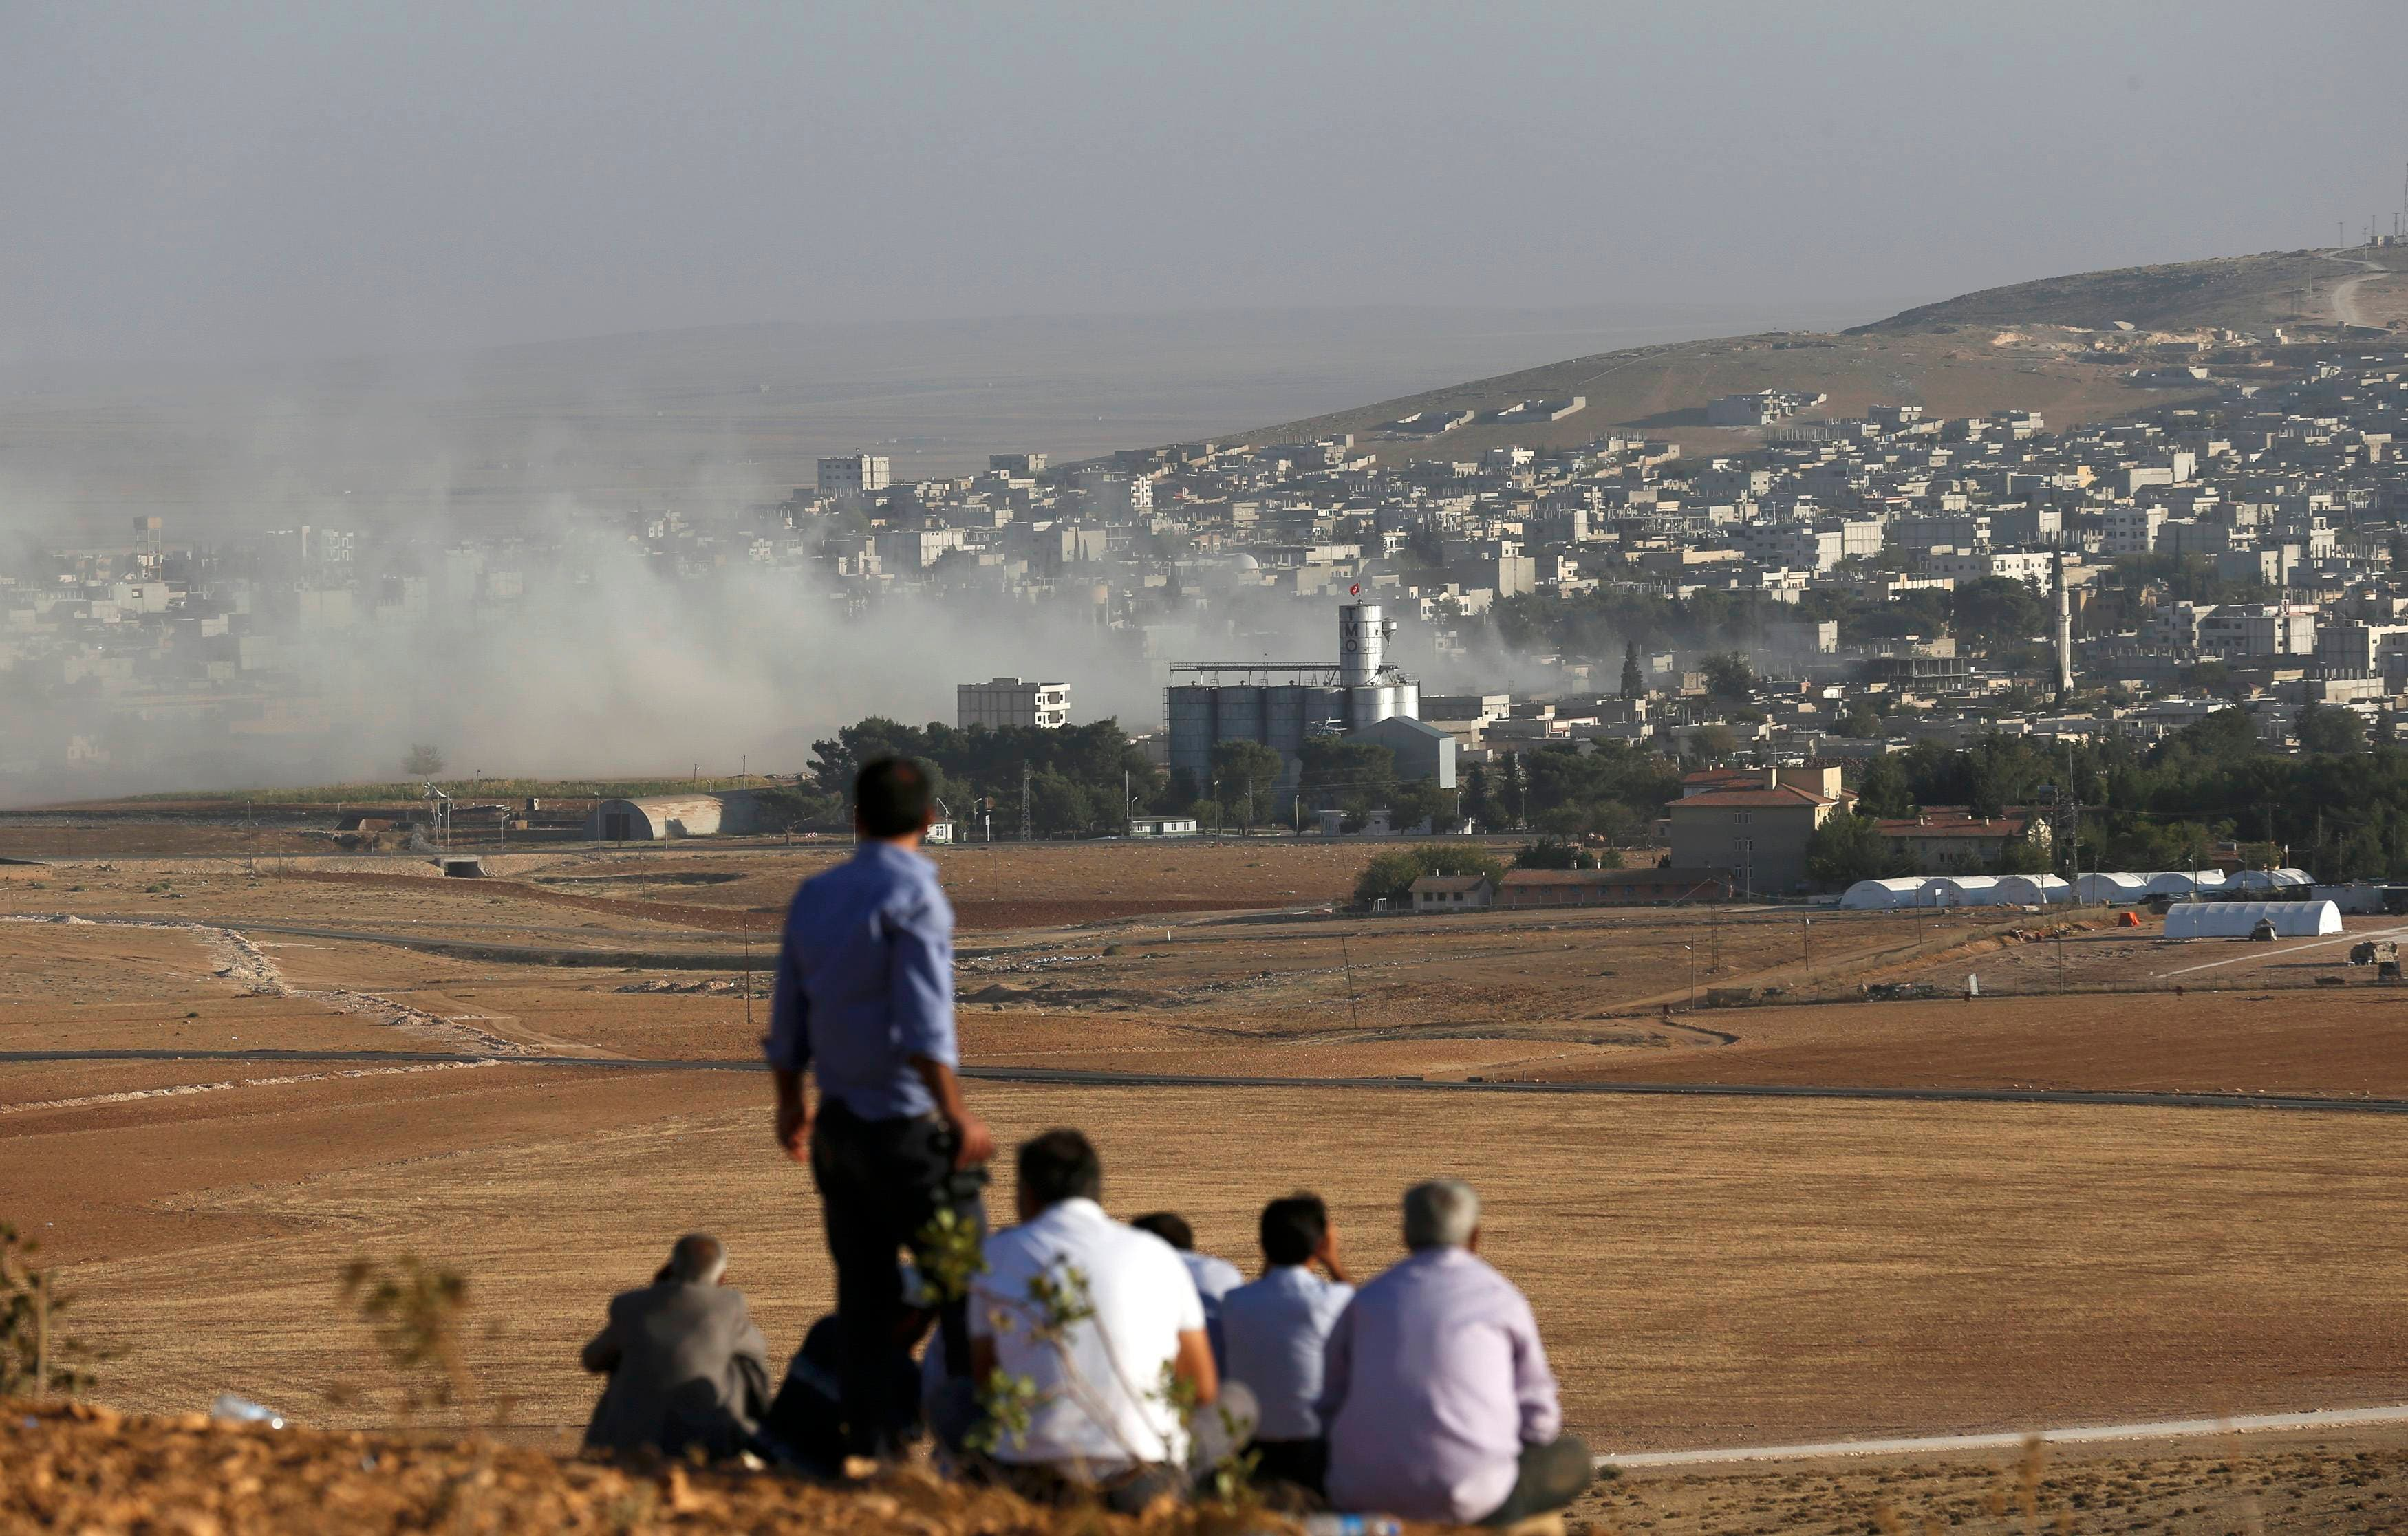 Turkish Kurds look towards the Syrian Kurdish town of Kobani from the top of a hill close to the border line between Turkey and Syria near Mursitpinar bordergate October 10, 2014. (Reuters) Kobane